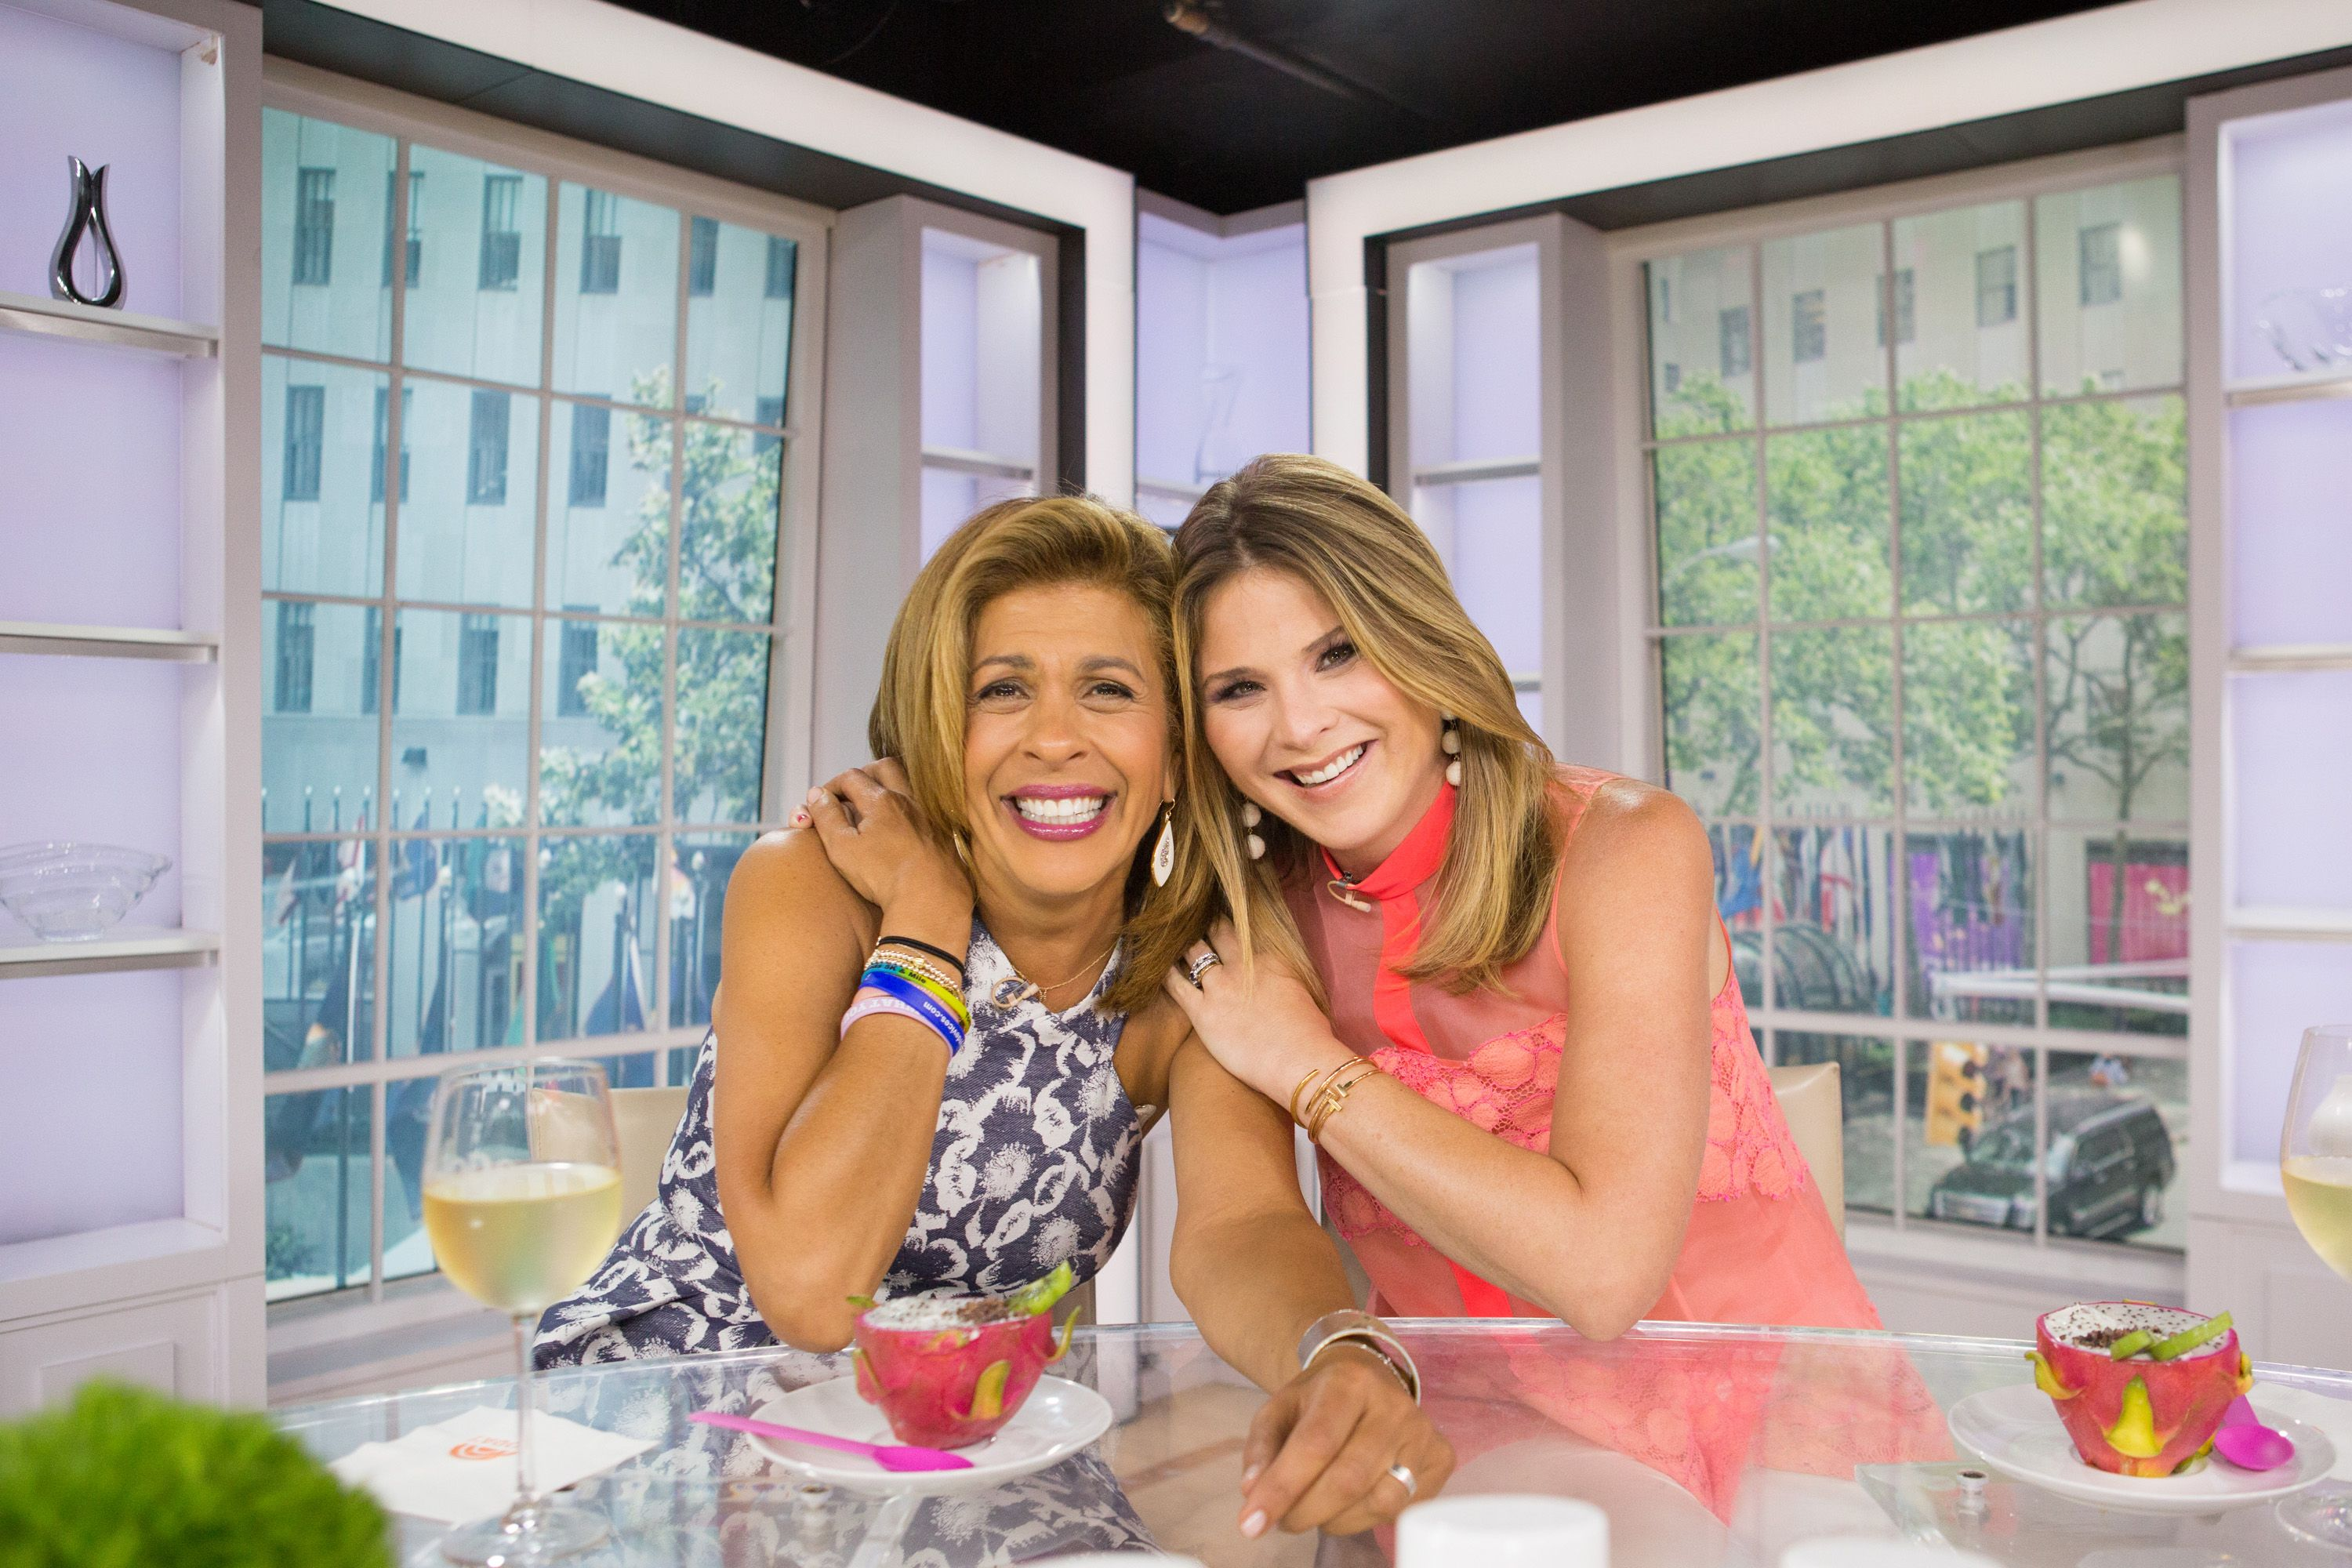 Hoda Kotb's Daughter and Jenna Bush Hager's Son Just Met, and the Photo is Too Cute